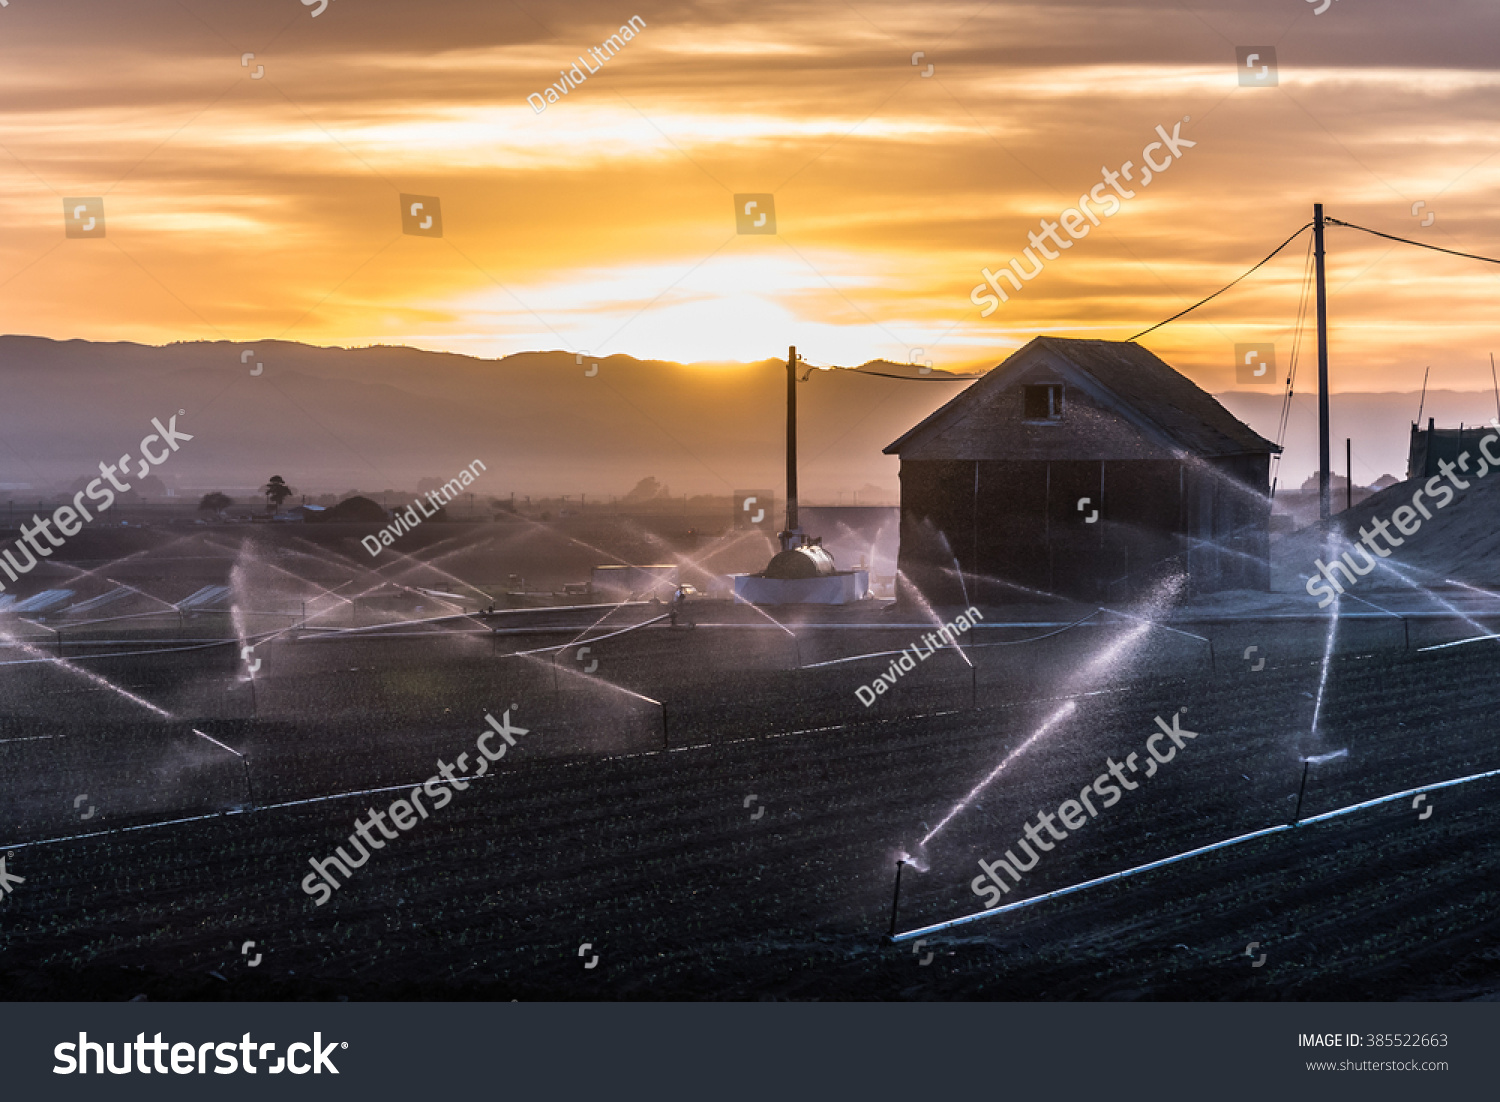 A barn at sunrise in the Salinas Valley, the hub of agriculture in central California, as freshly planted crops are sprayed with water.